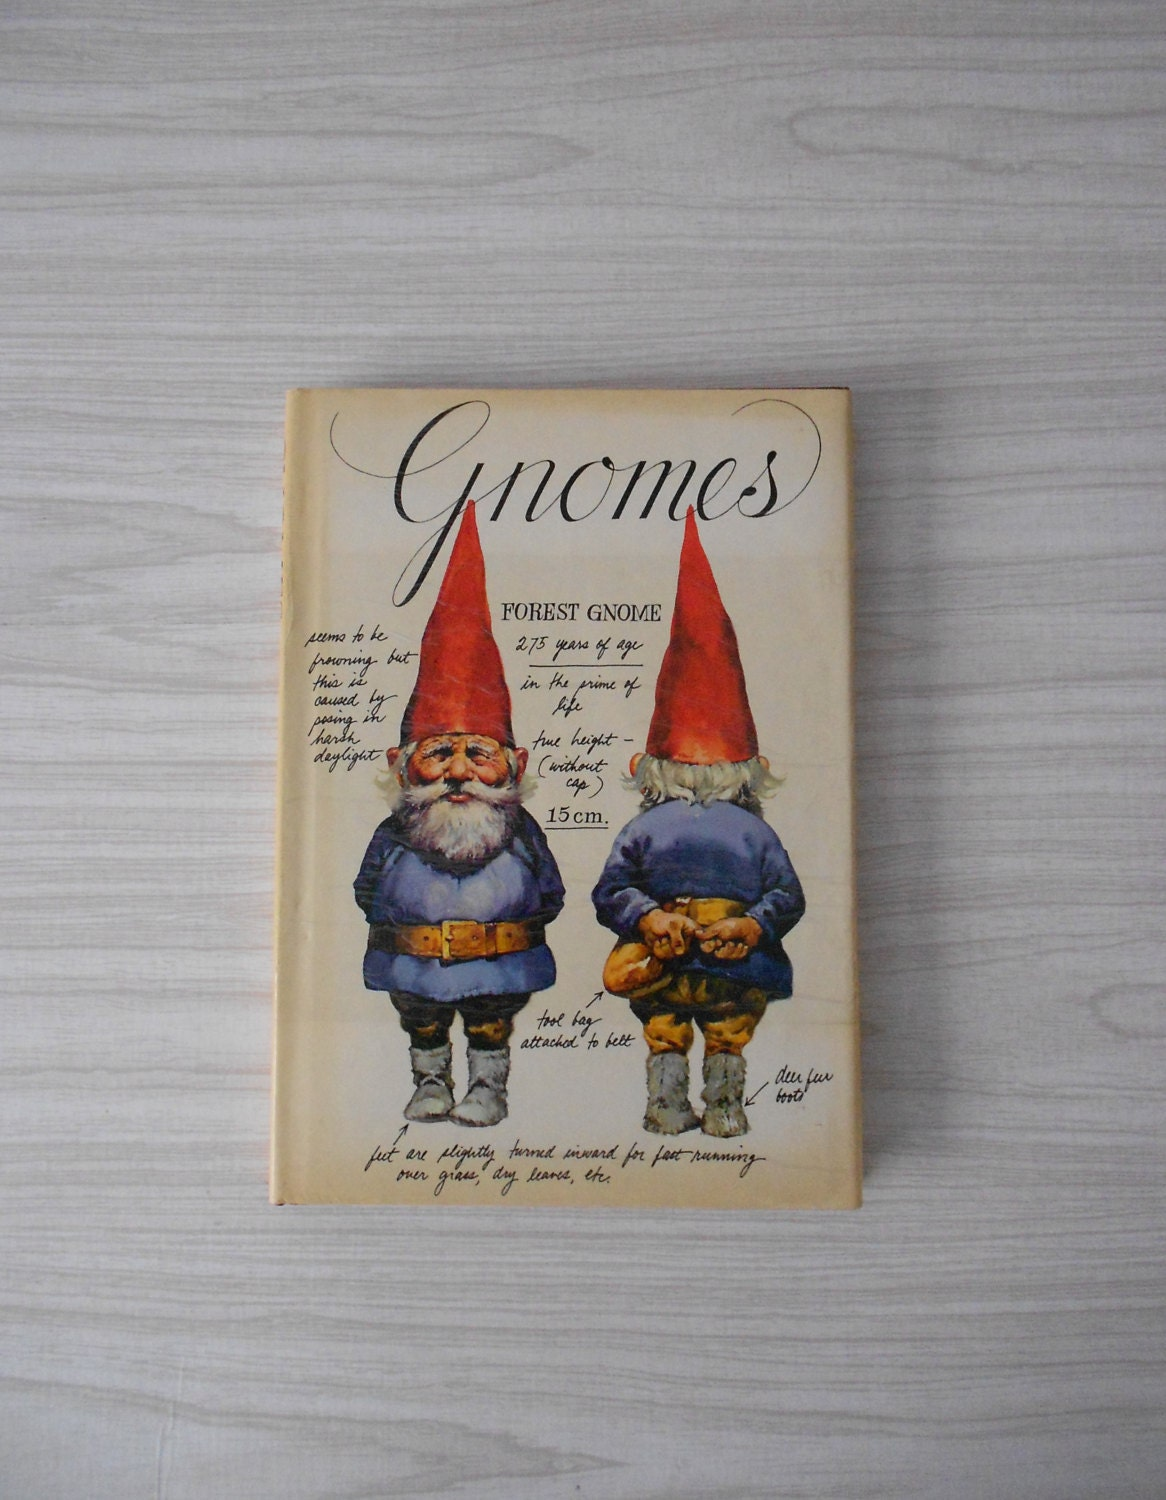 1977 Illustrated GNOMES book published by Harry N. Abrams Fantasy Spirits